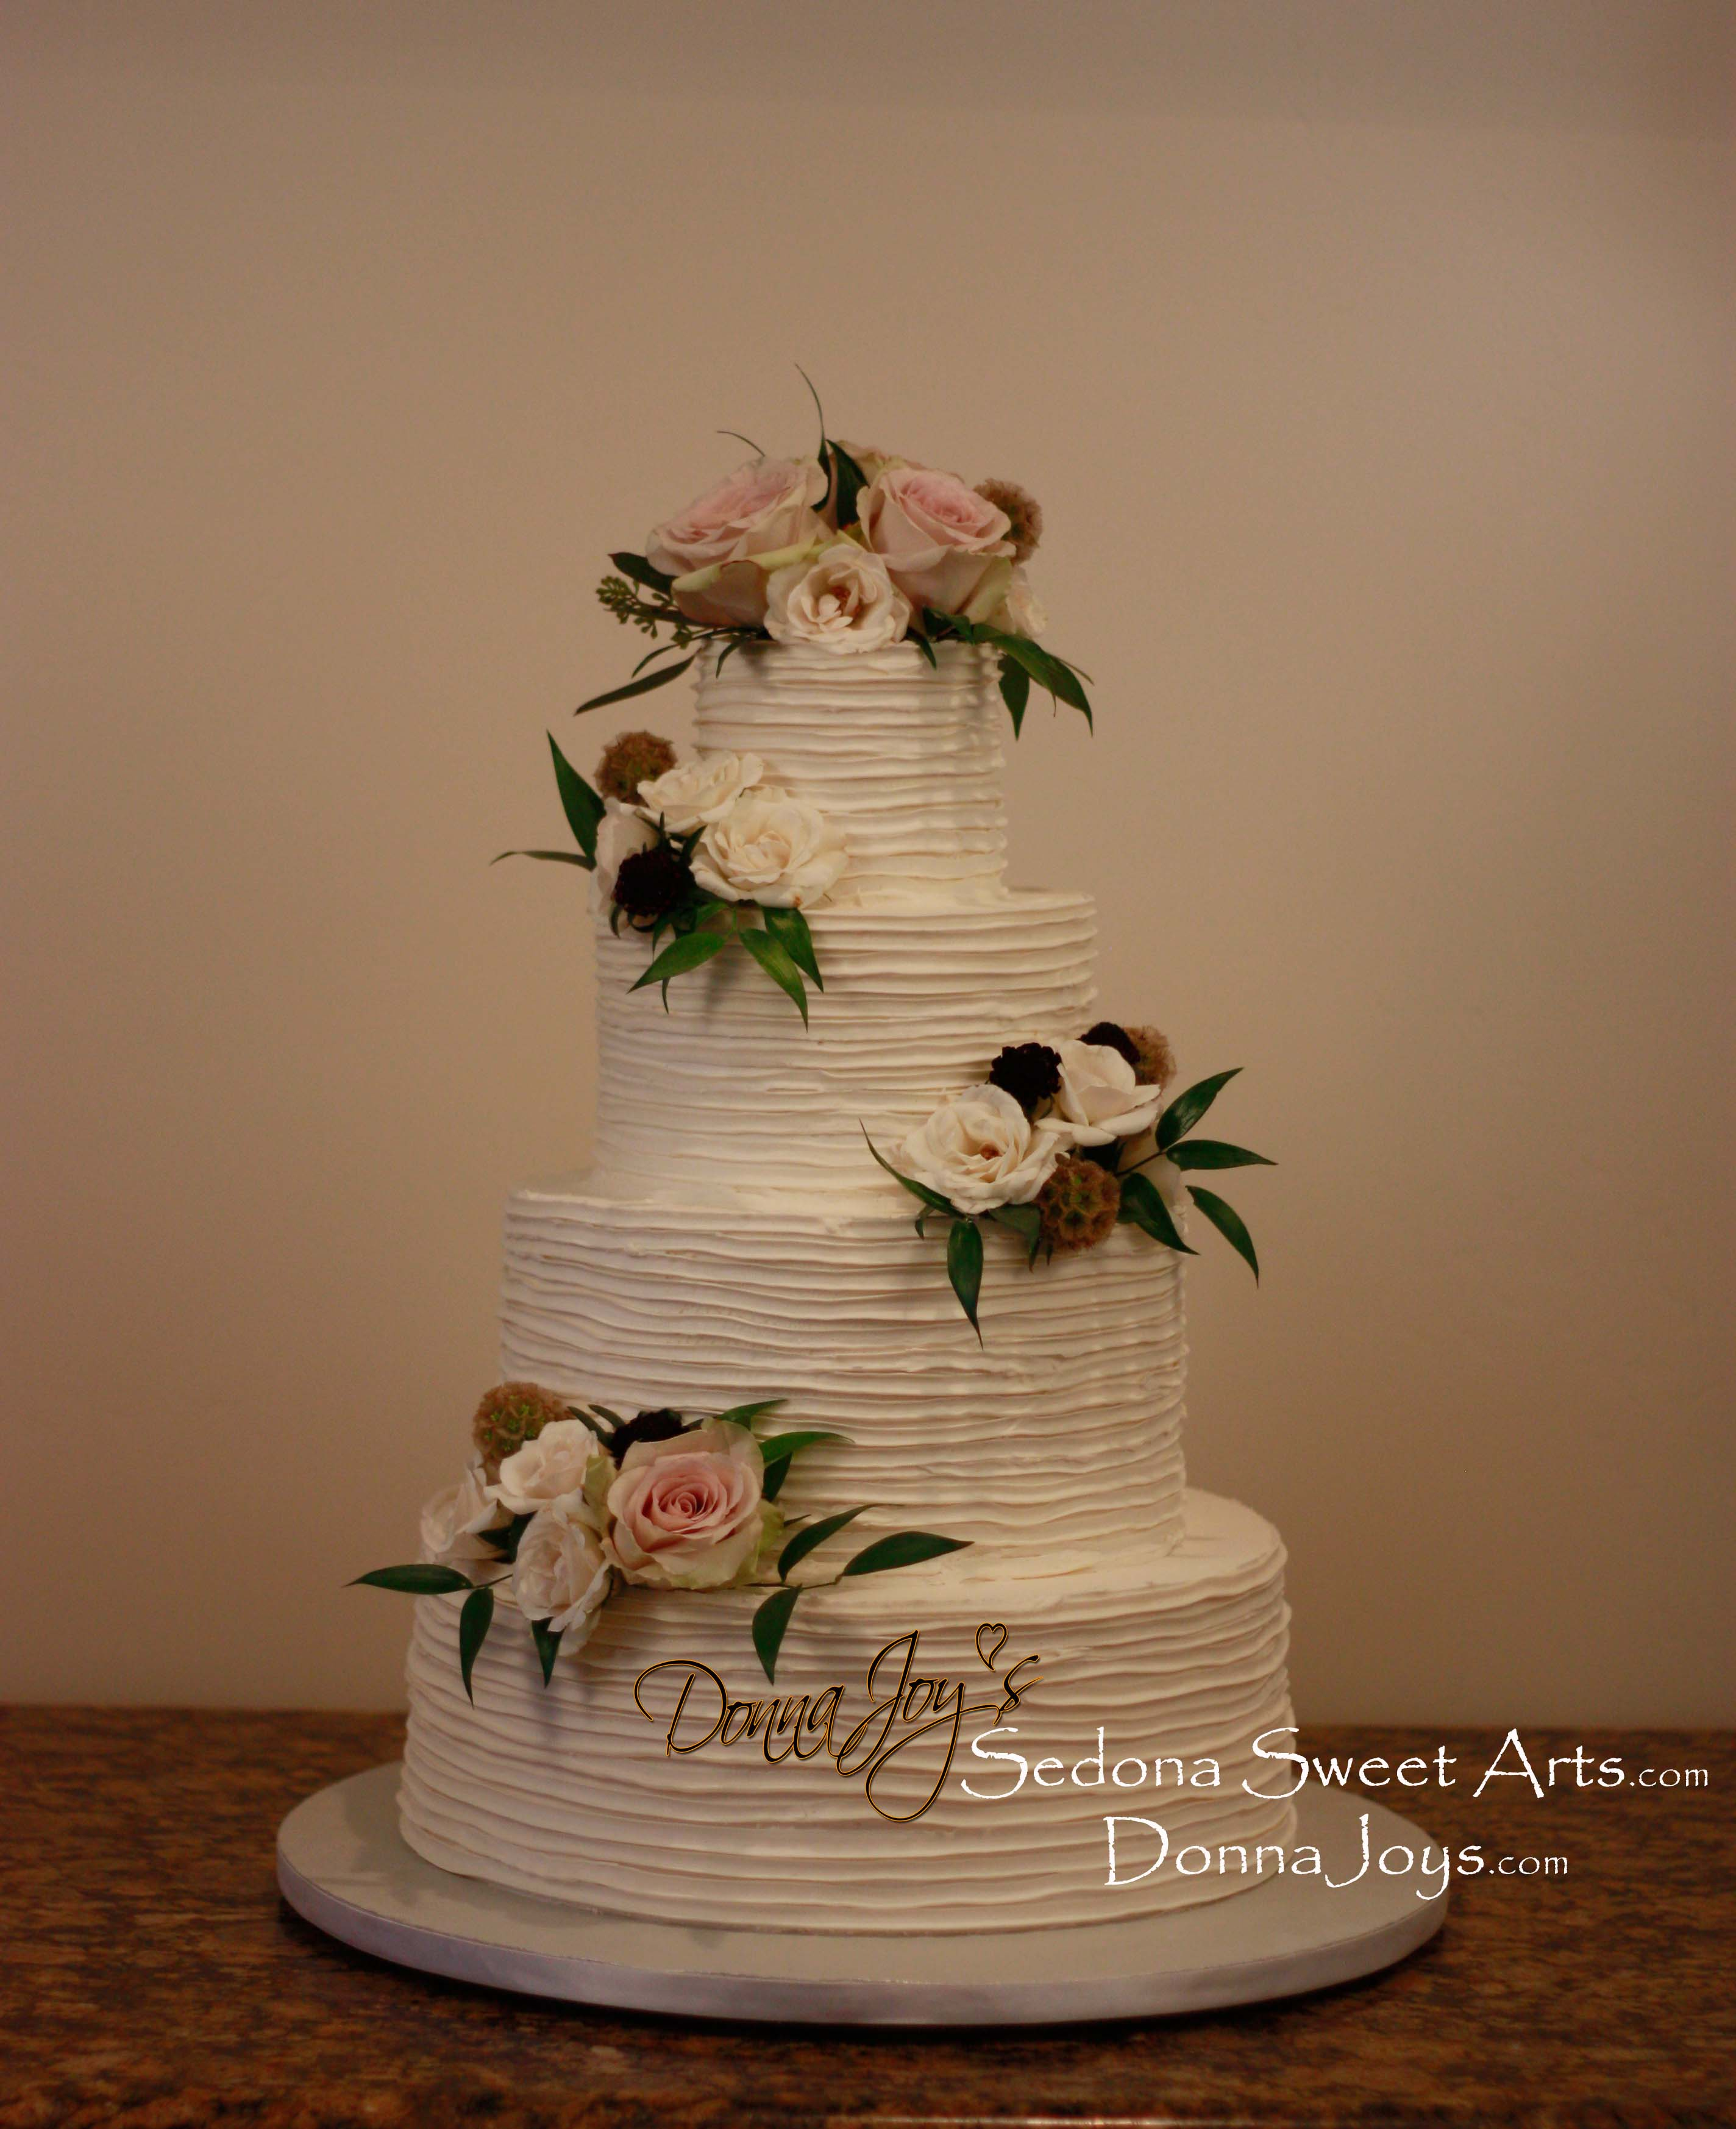 Piped buttercream by Donna Joy ~ Sedona Sweet Arts